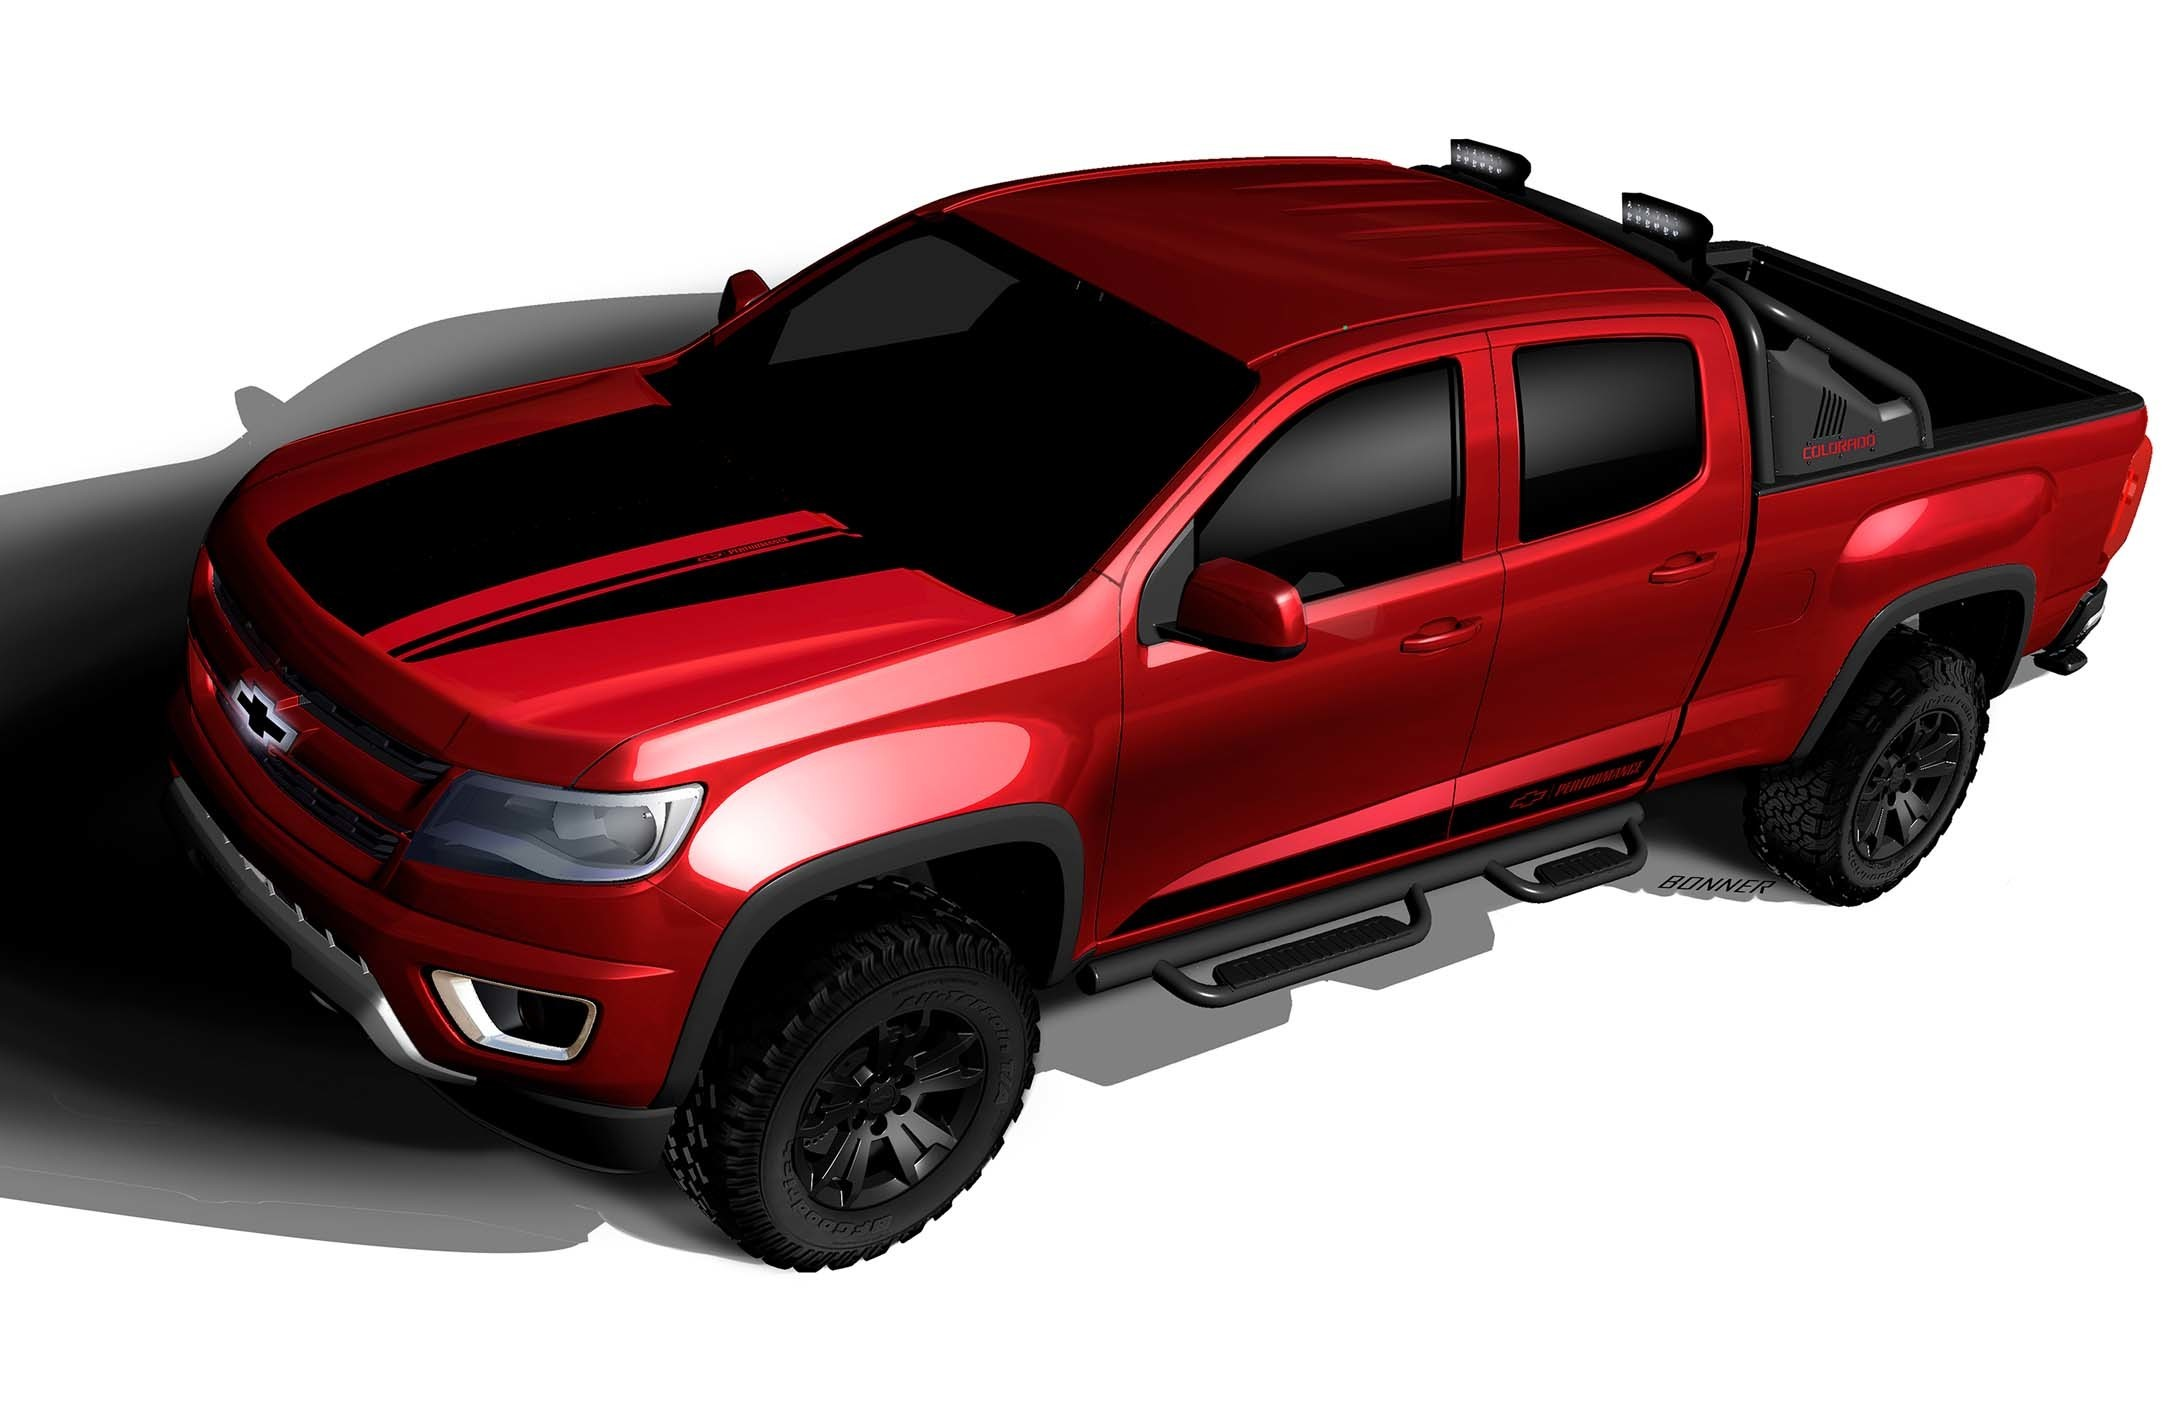 Chevrolet Colorado Z71 Trail Boss 3 0 Concept Is a Ford F 150 Raptor